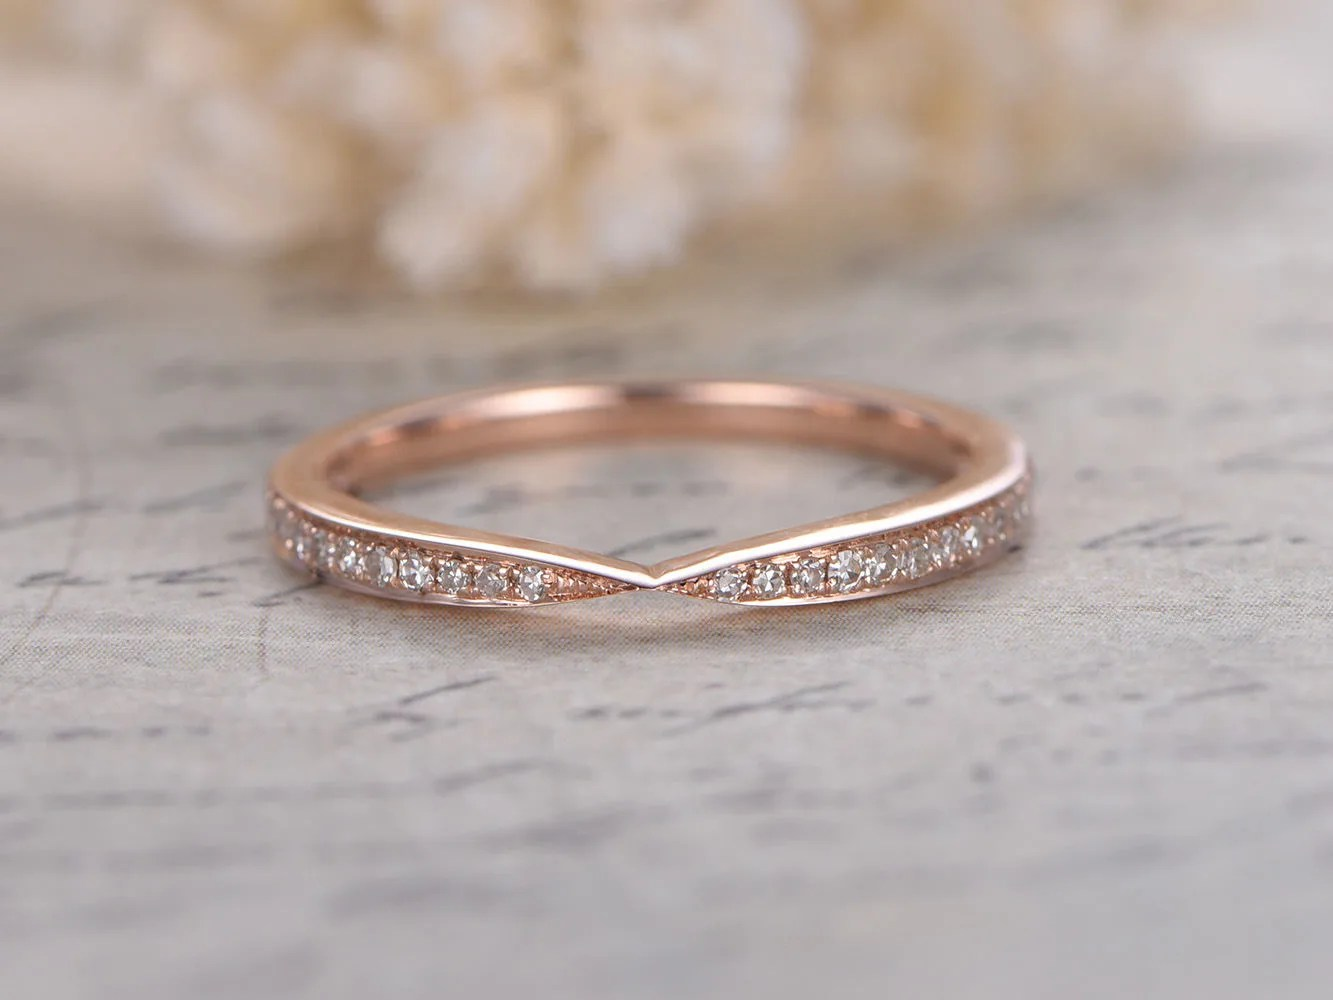 curved wedding band contoured wedding bands Curved Wedding Band Chevron Wedding Band Twist Wedding Ring Half Eternity Ring Art Deco Band Vintage Style Stacking Ring 14K Rose Gold